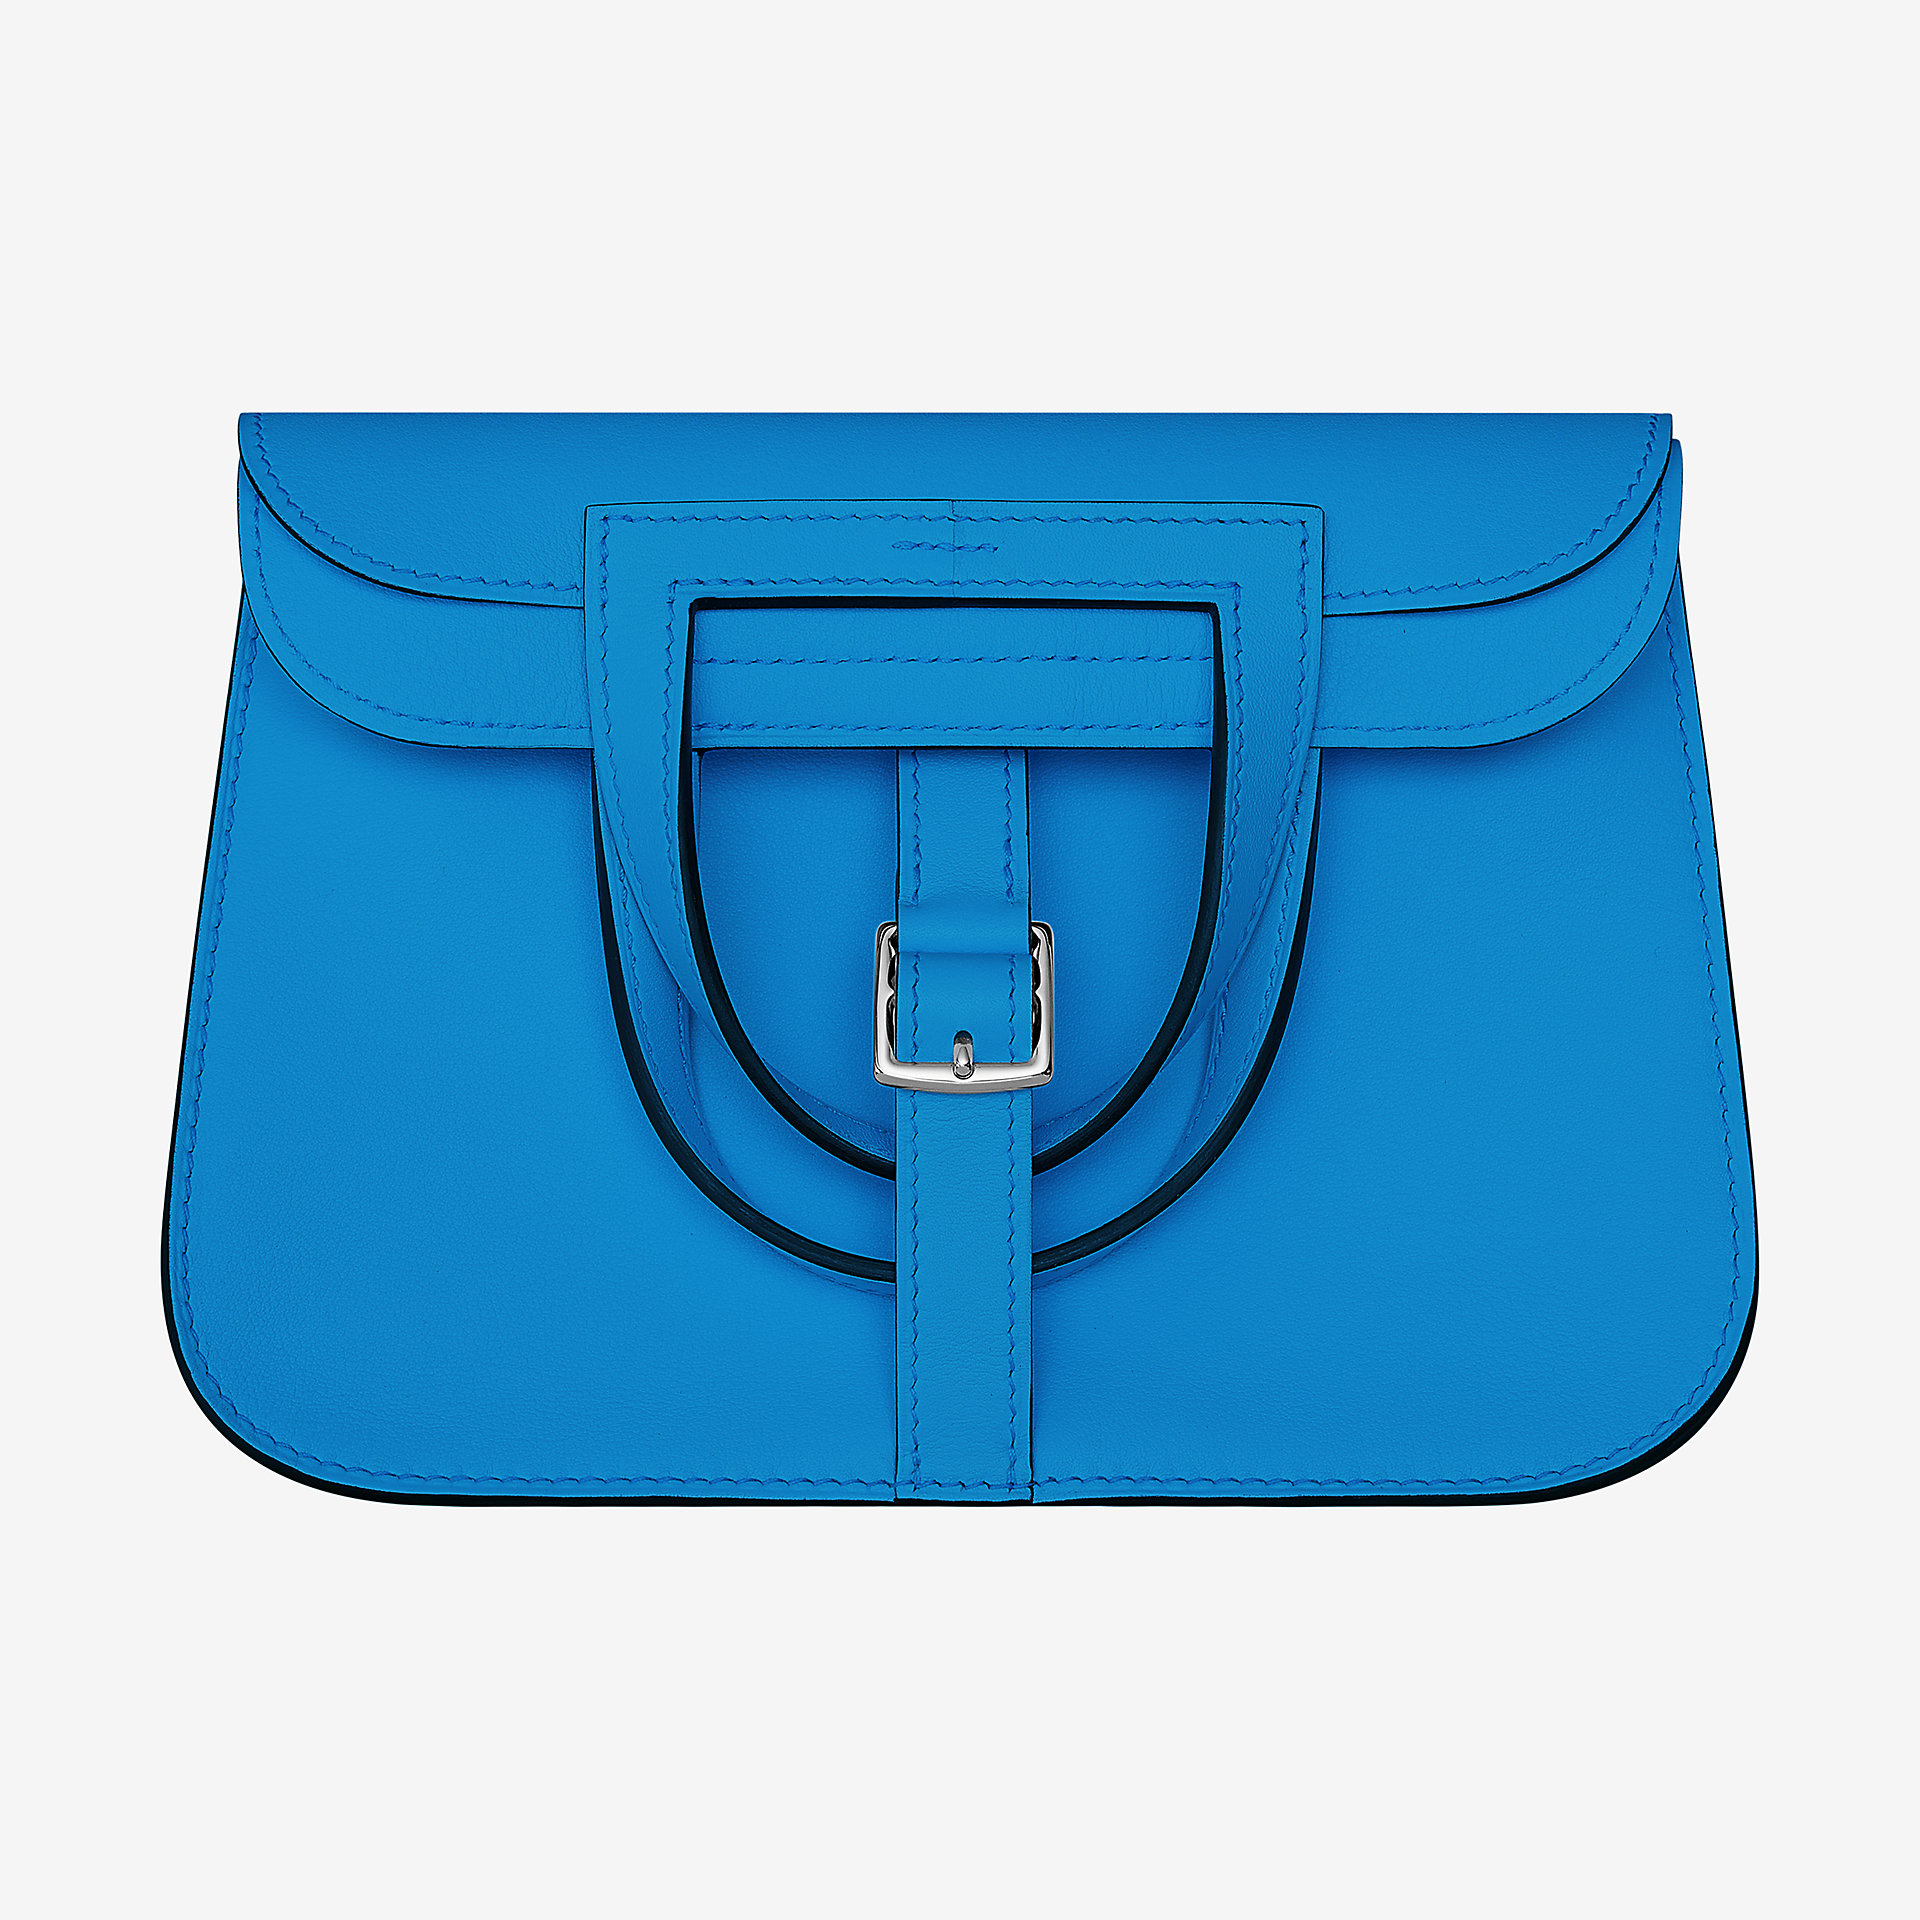 爱马仕Hermes Halzan mini bag bleu zanzibar Swift 小牛皮手提包